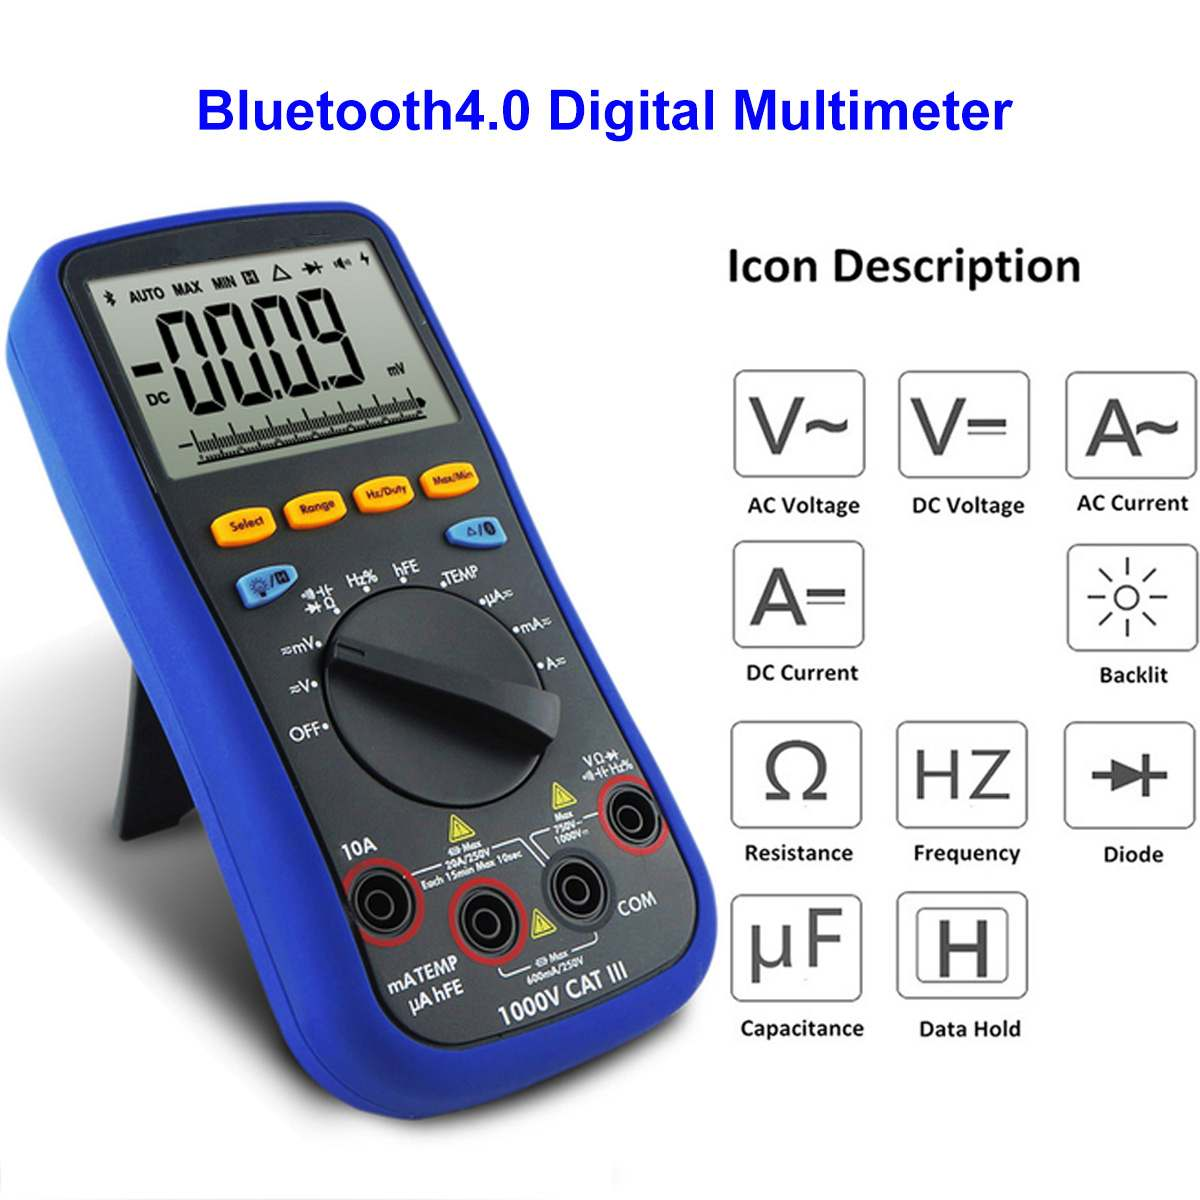 Tester bluetooth Lcd Digital Multimeter 4.0 Test Lead K-type Thermocouple 6000 Count Backlight Real 10m Ohms Digital MultimeterTester bluetooth Lcd Digital Multimeter 4.0 Test Lead K-type Thermocouple 6000 Count Backlight Real 10m Ohms Digital Multimeter